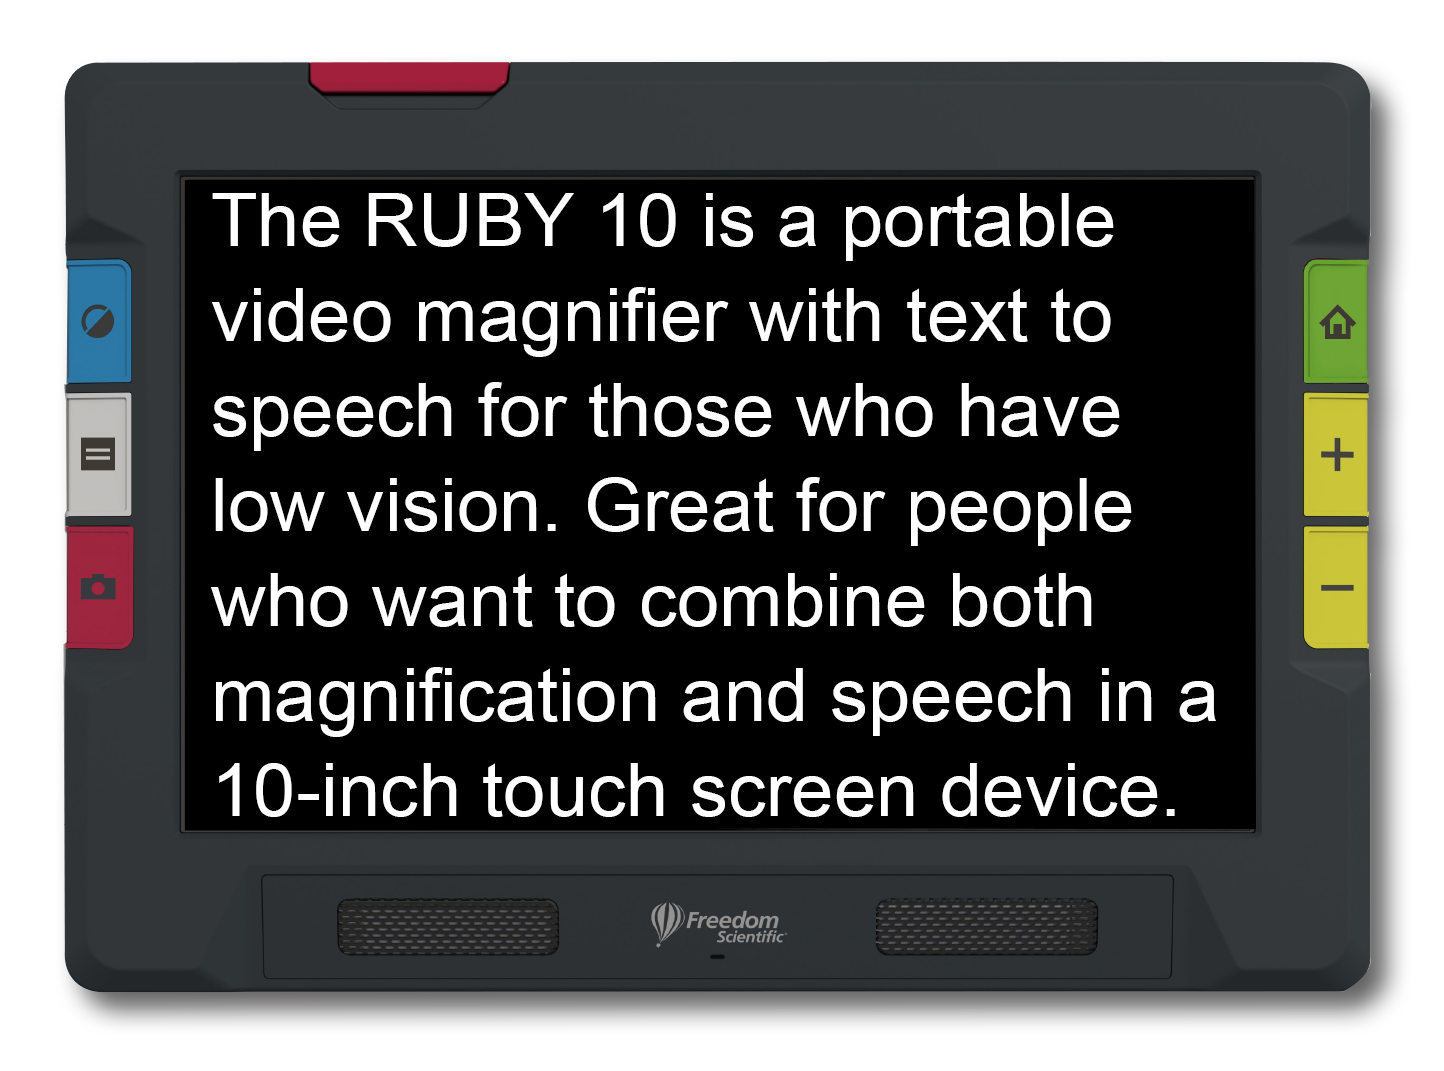 Ruby 10 showing text White on Black